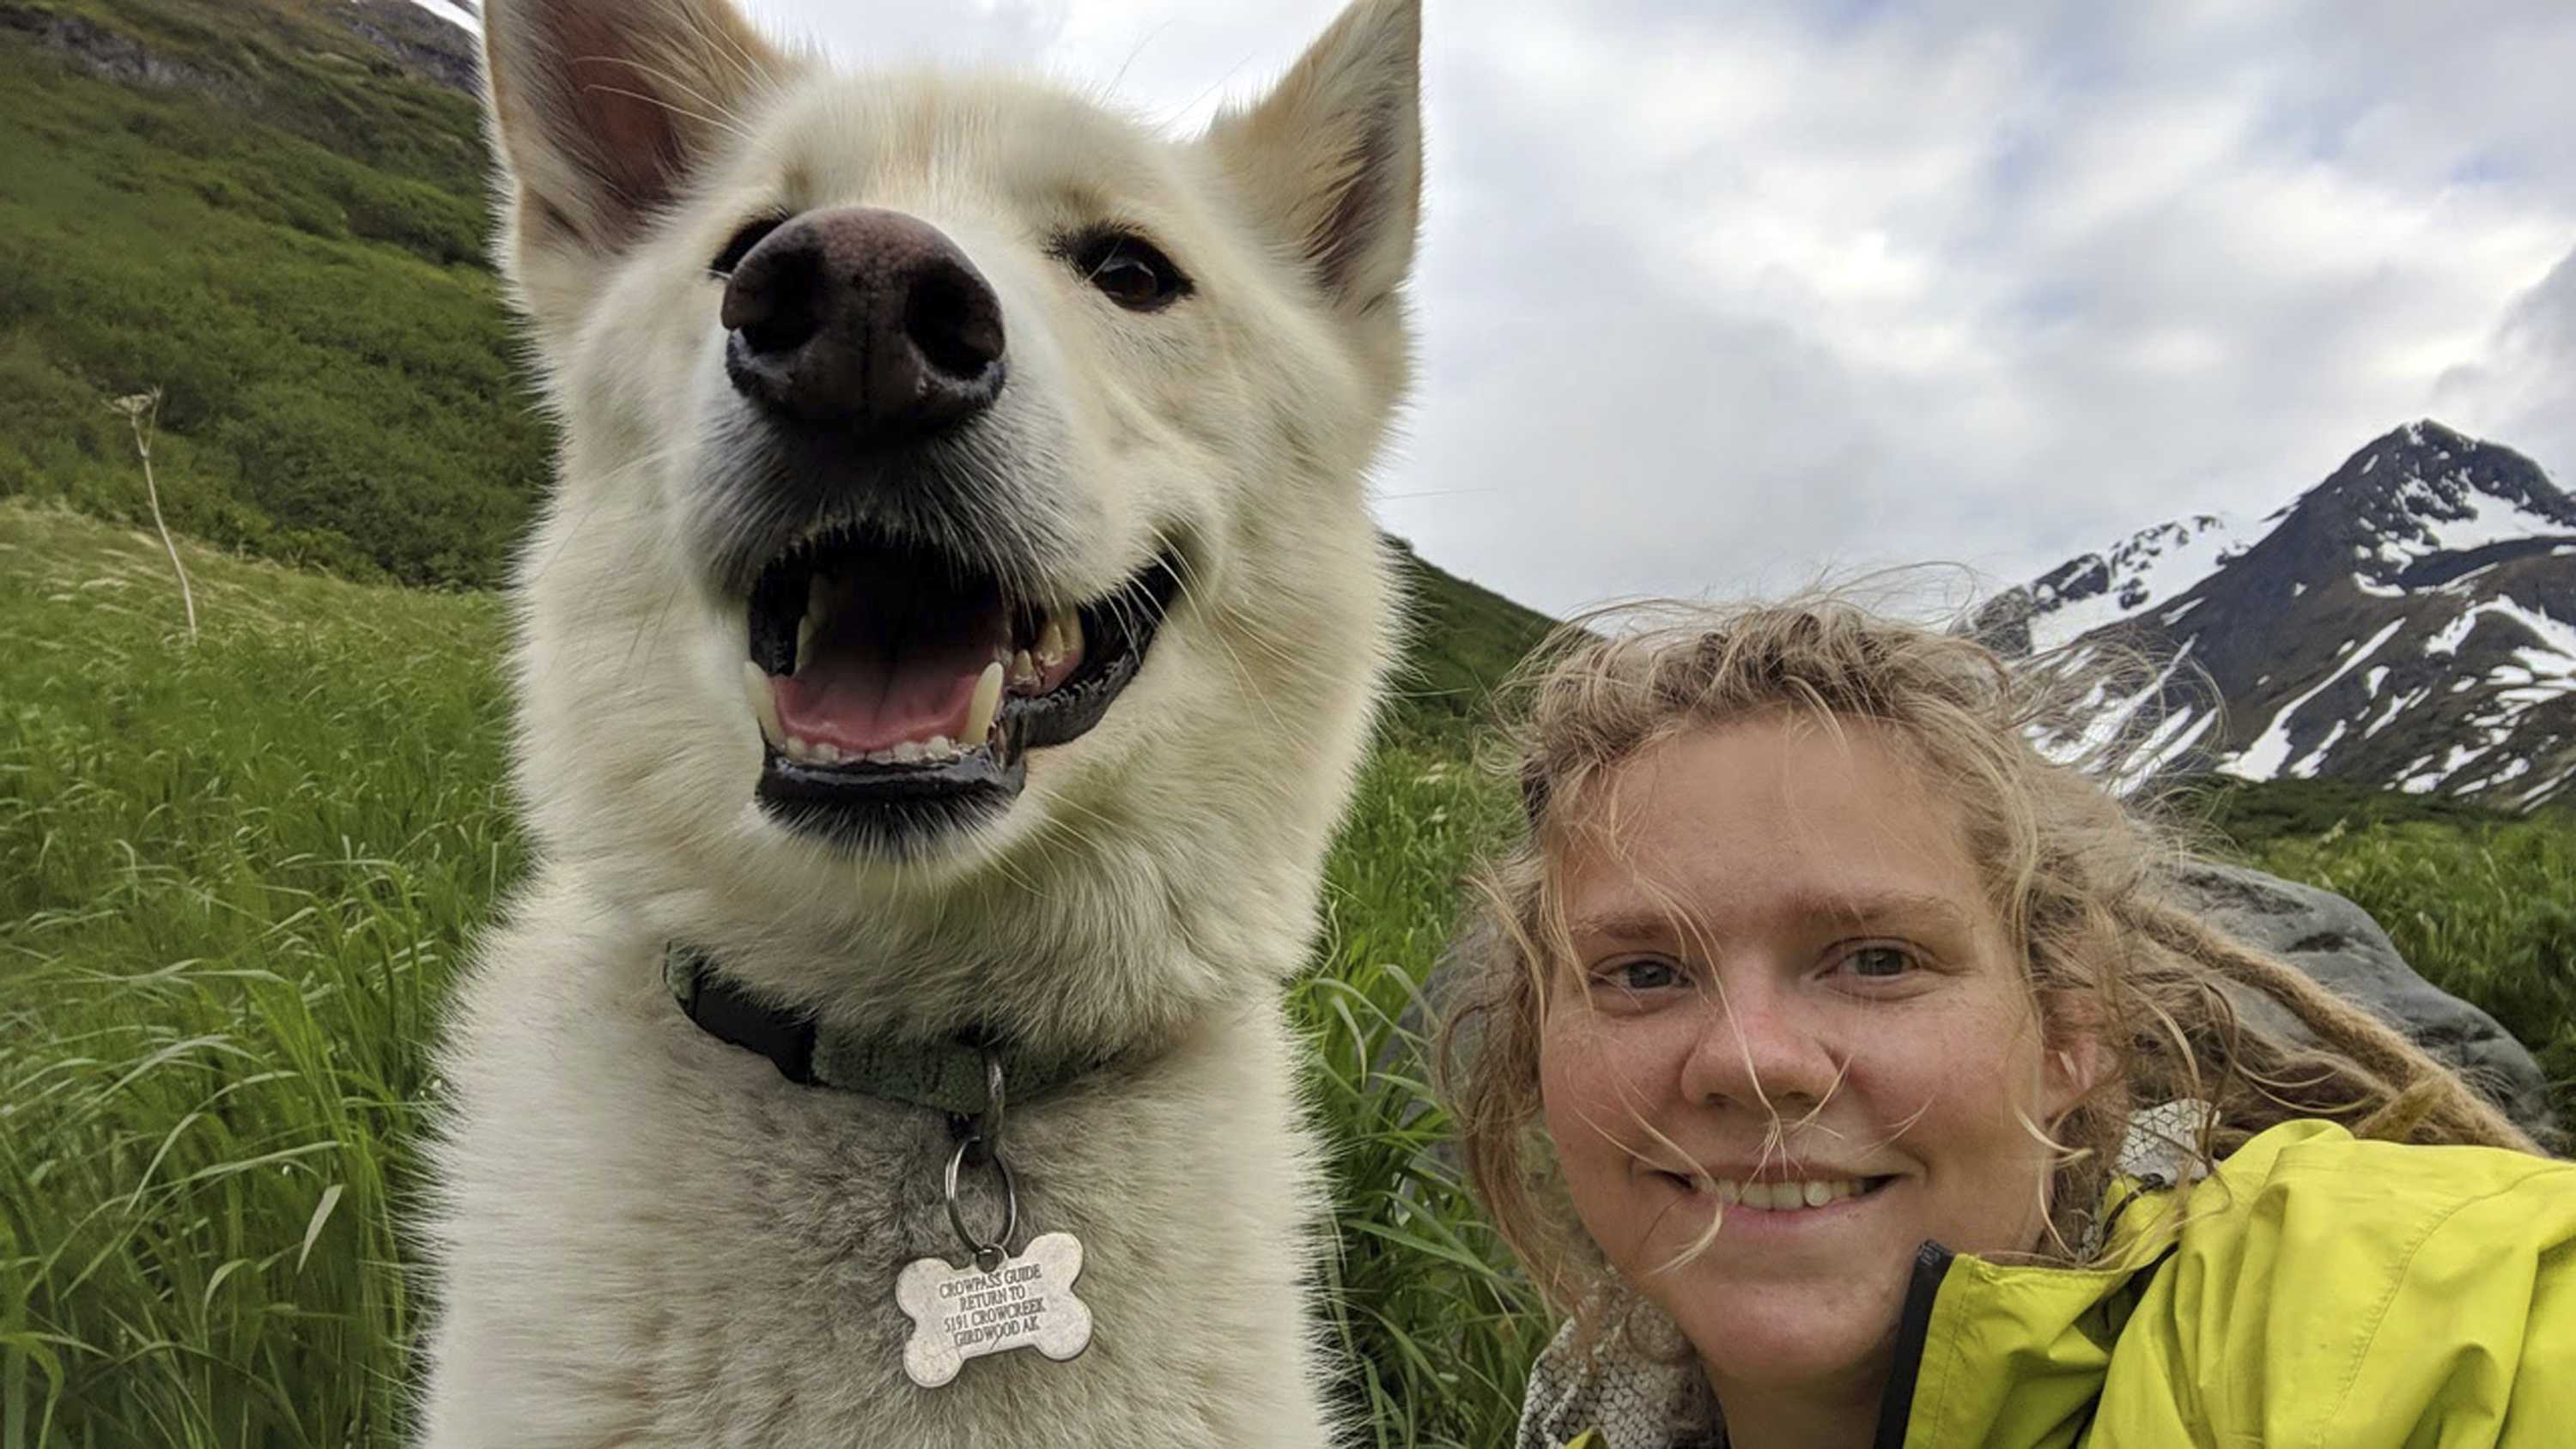 This Tuesday, June 19, 2018, photo by Amelia Milling shows her with a 7-year-old Alaskan husky named Nanook. Milling says the white dog found her after she tumbled down a slope. Nanook's owner, Scott Swift, says Nanook has been taking trips into Chugach State Park for years and accompanies hikers he meets on the trails.